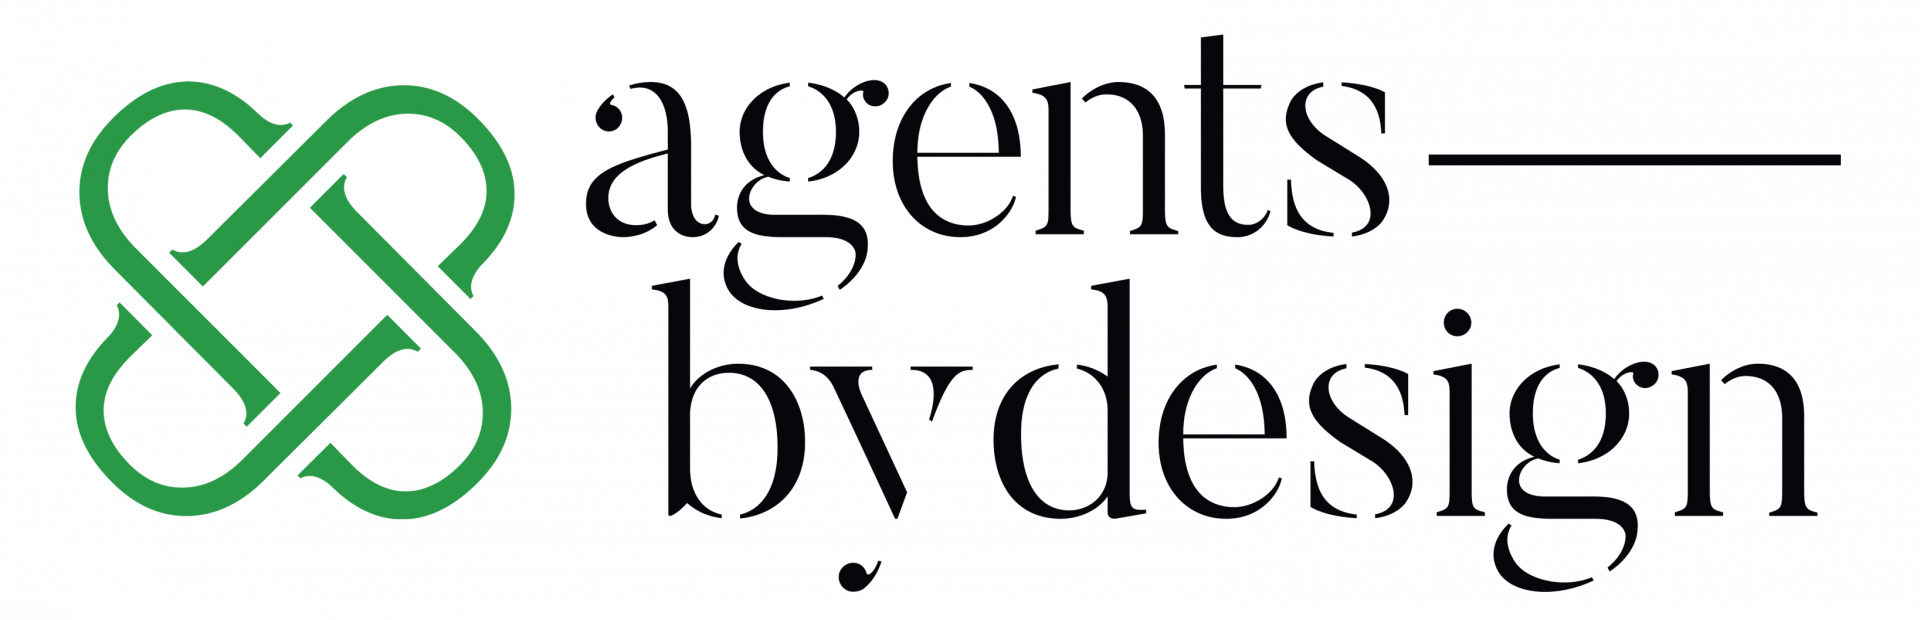 Agents By Design logo